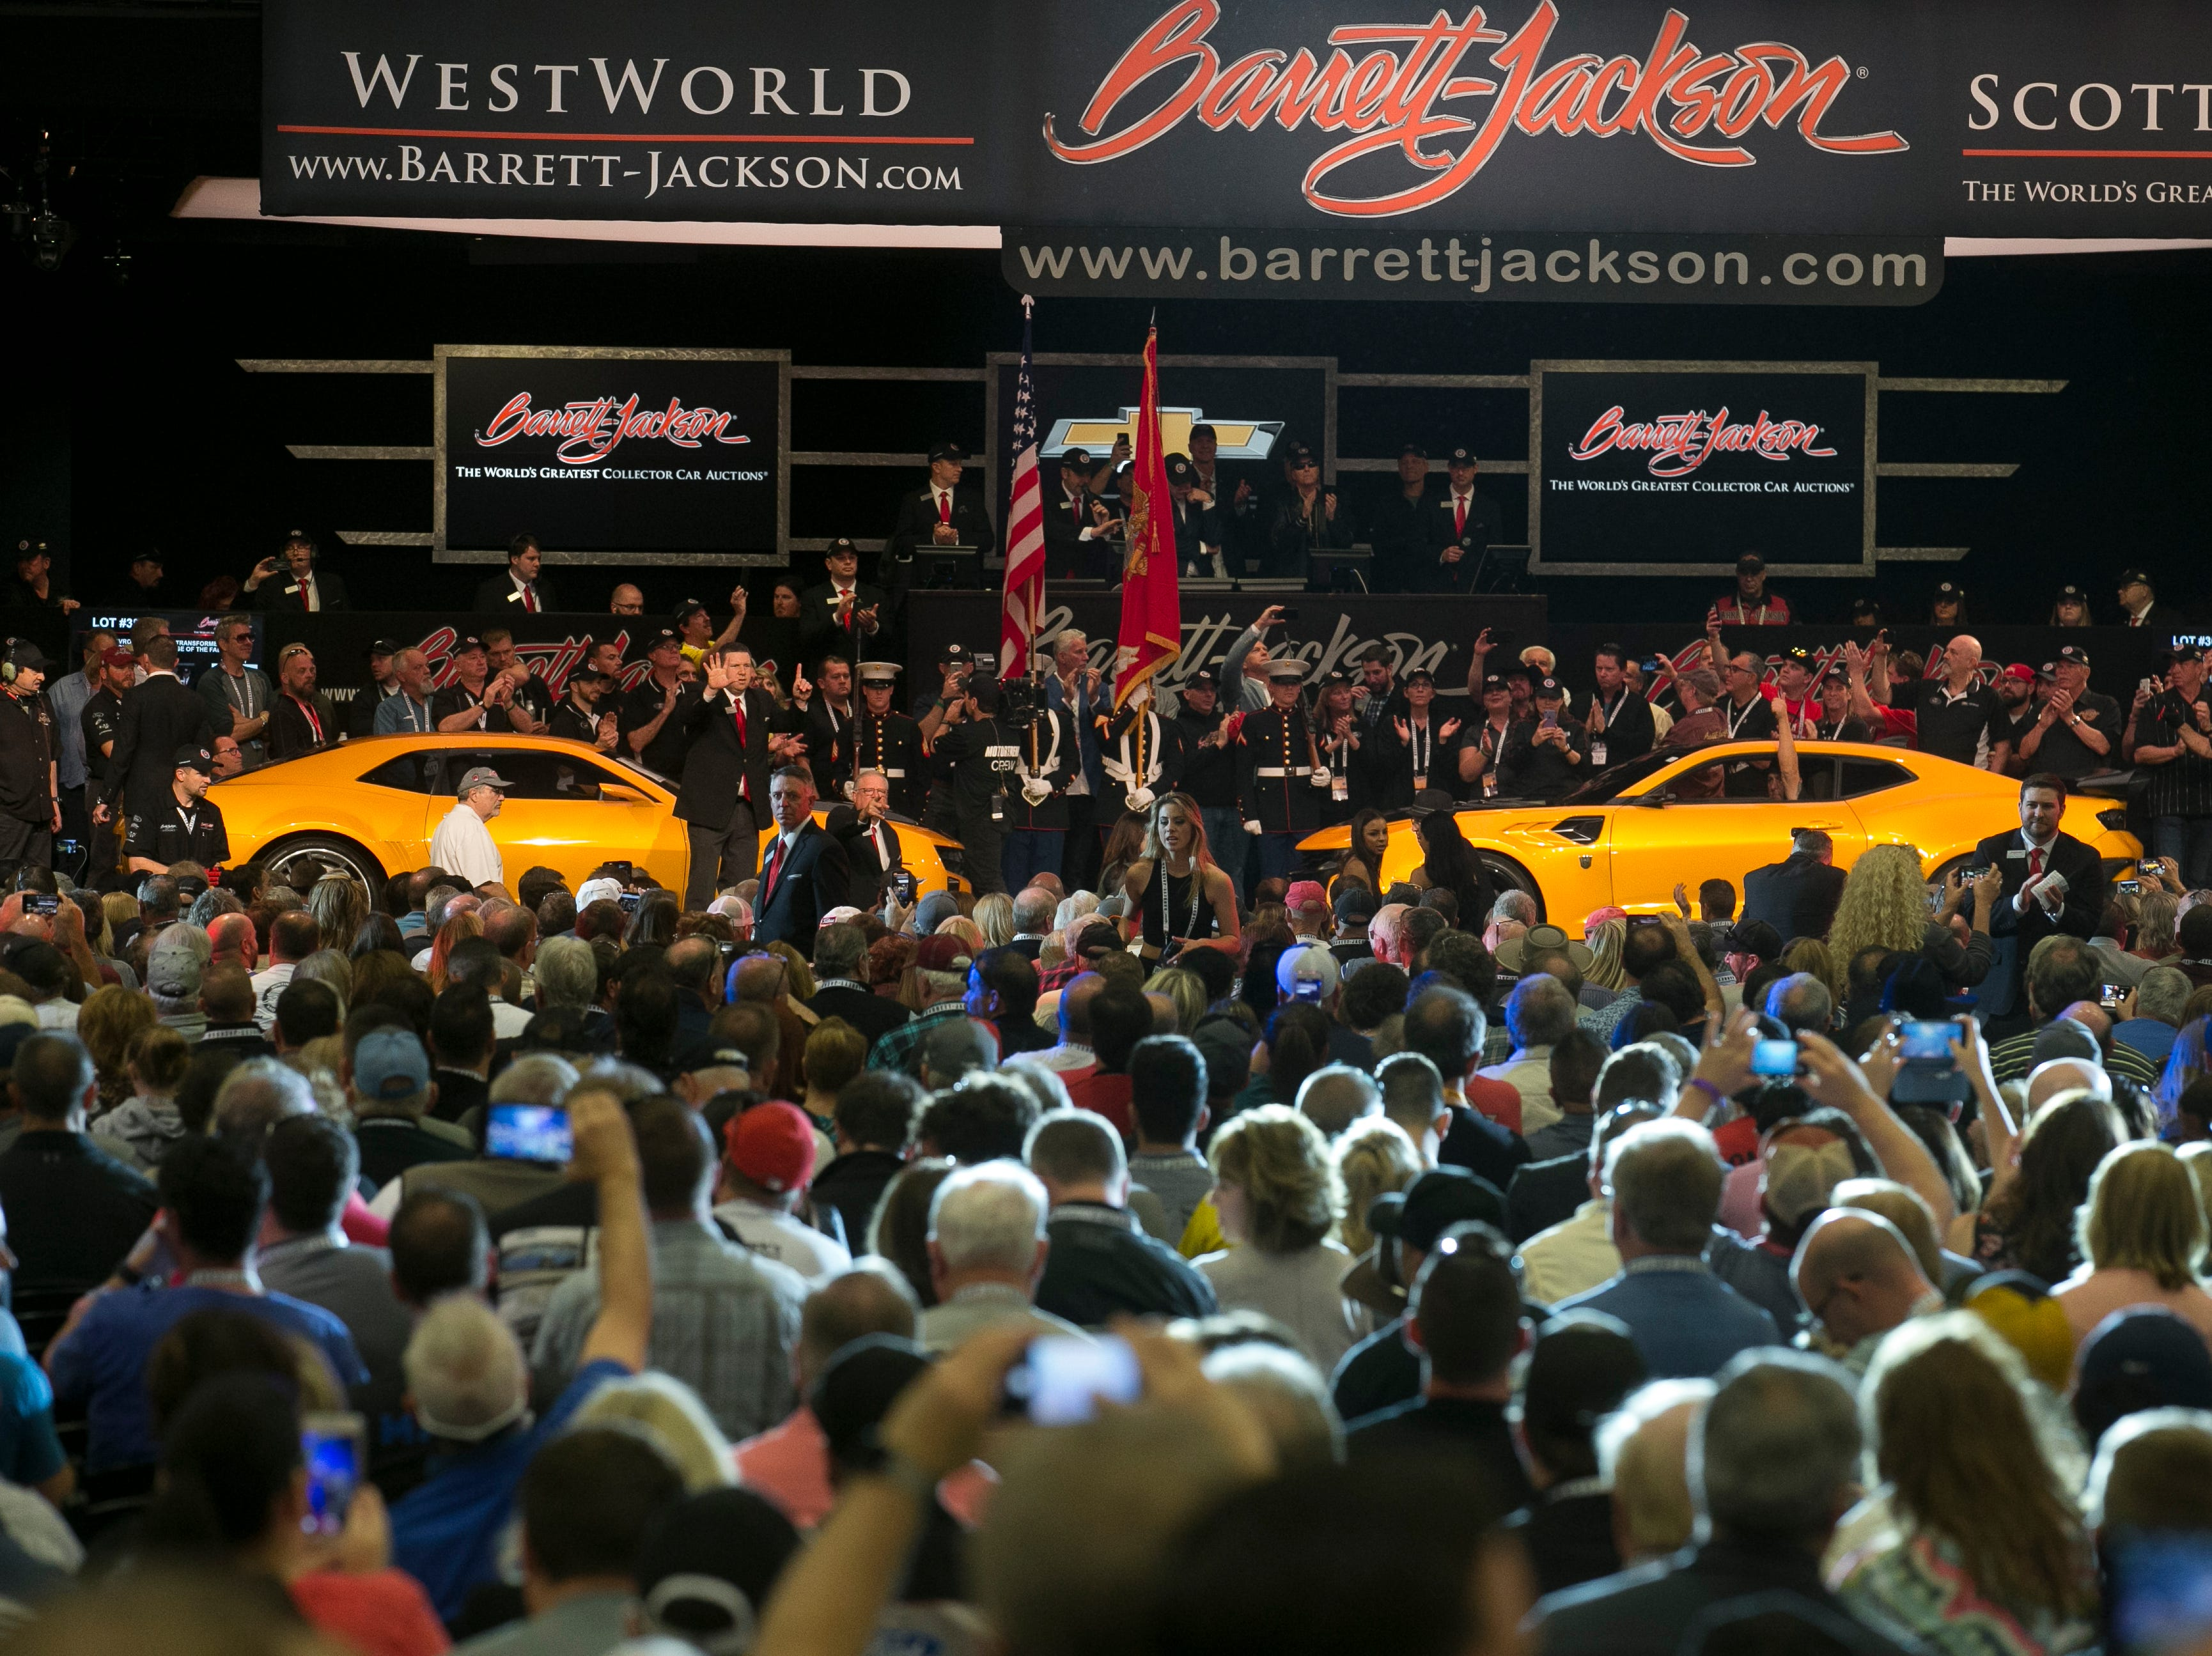 Four original Bumblebee Camaros from the Transformers film franchise sit on the auction block at Barrett-Jackson collector-car auction at WestWorld on Jan. 19, 2019, in Scottsdale. The four sold for $500,000 total with the money going to benefit Operation Homefront, a non-profit that supports military families.